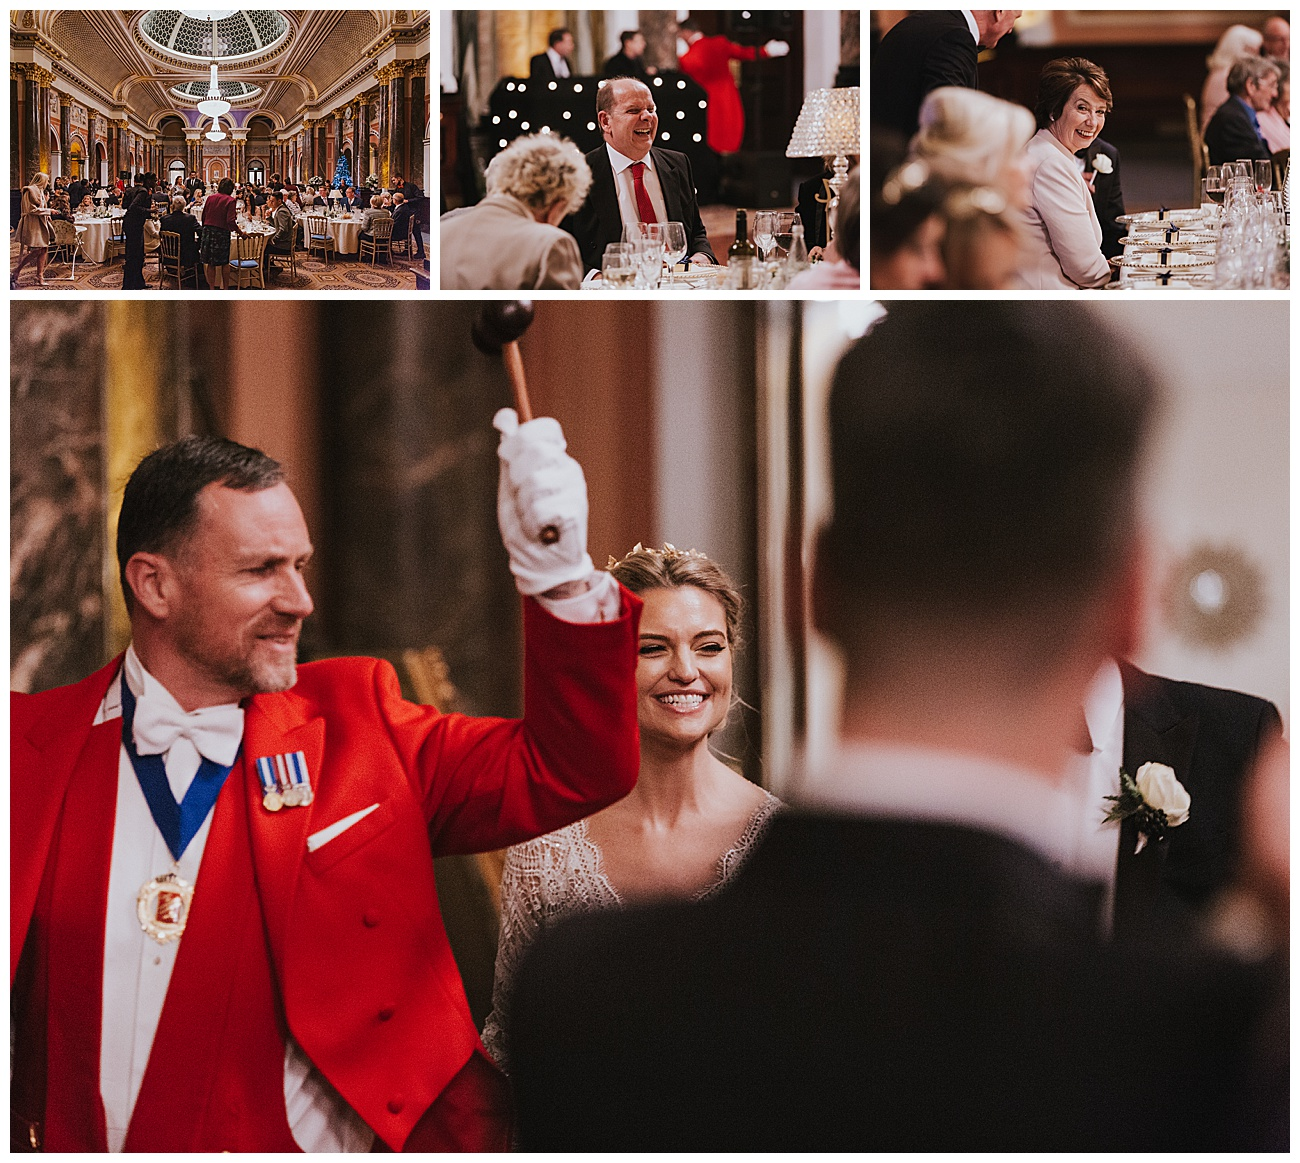 The bride and groom enter the reception room with their toastmaster as the guests welcome them